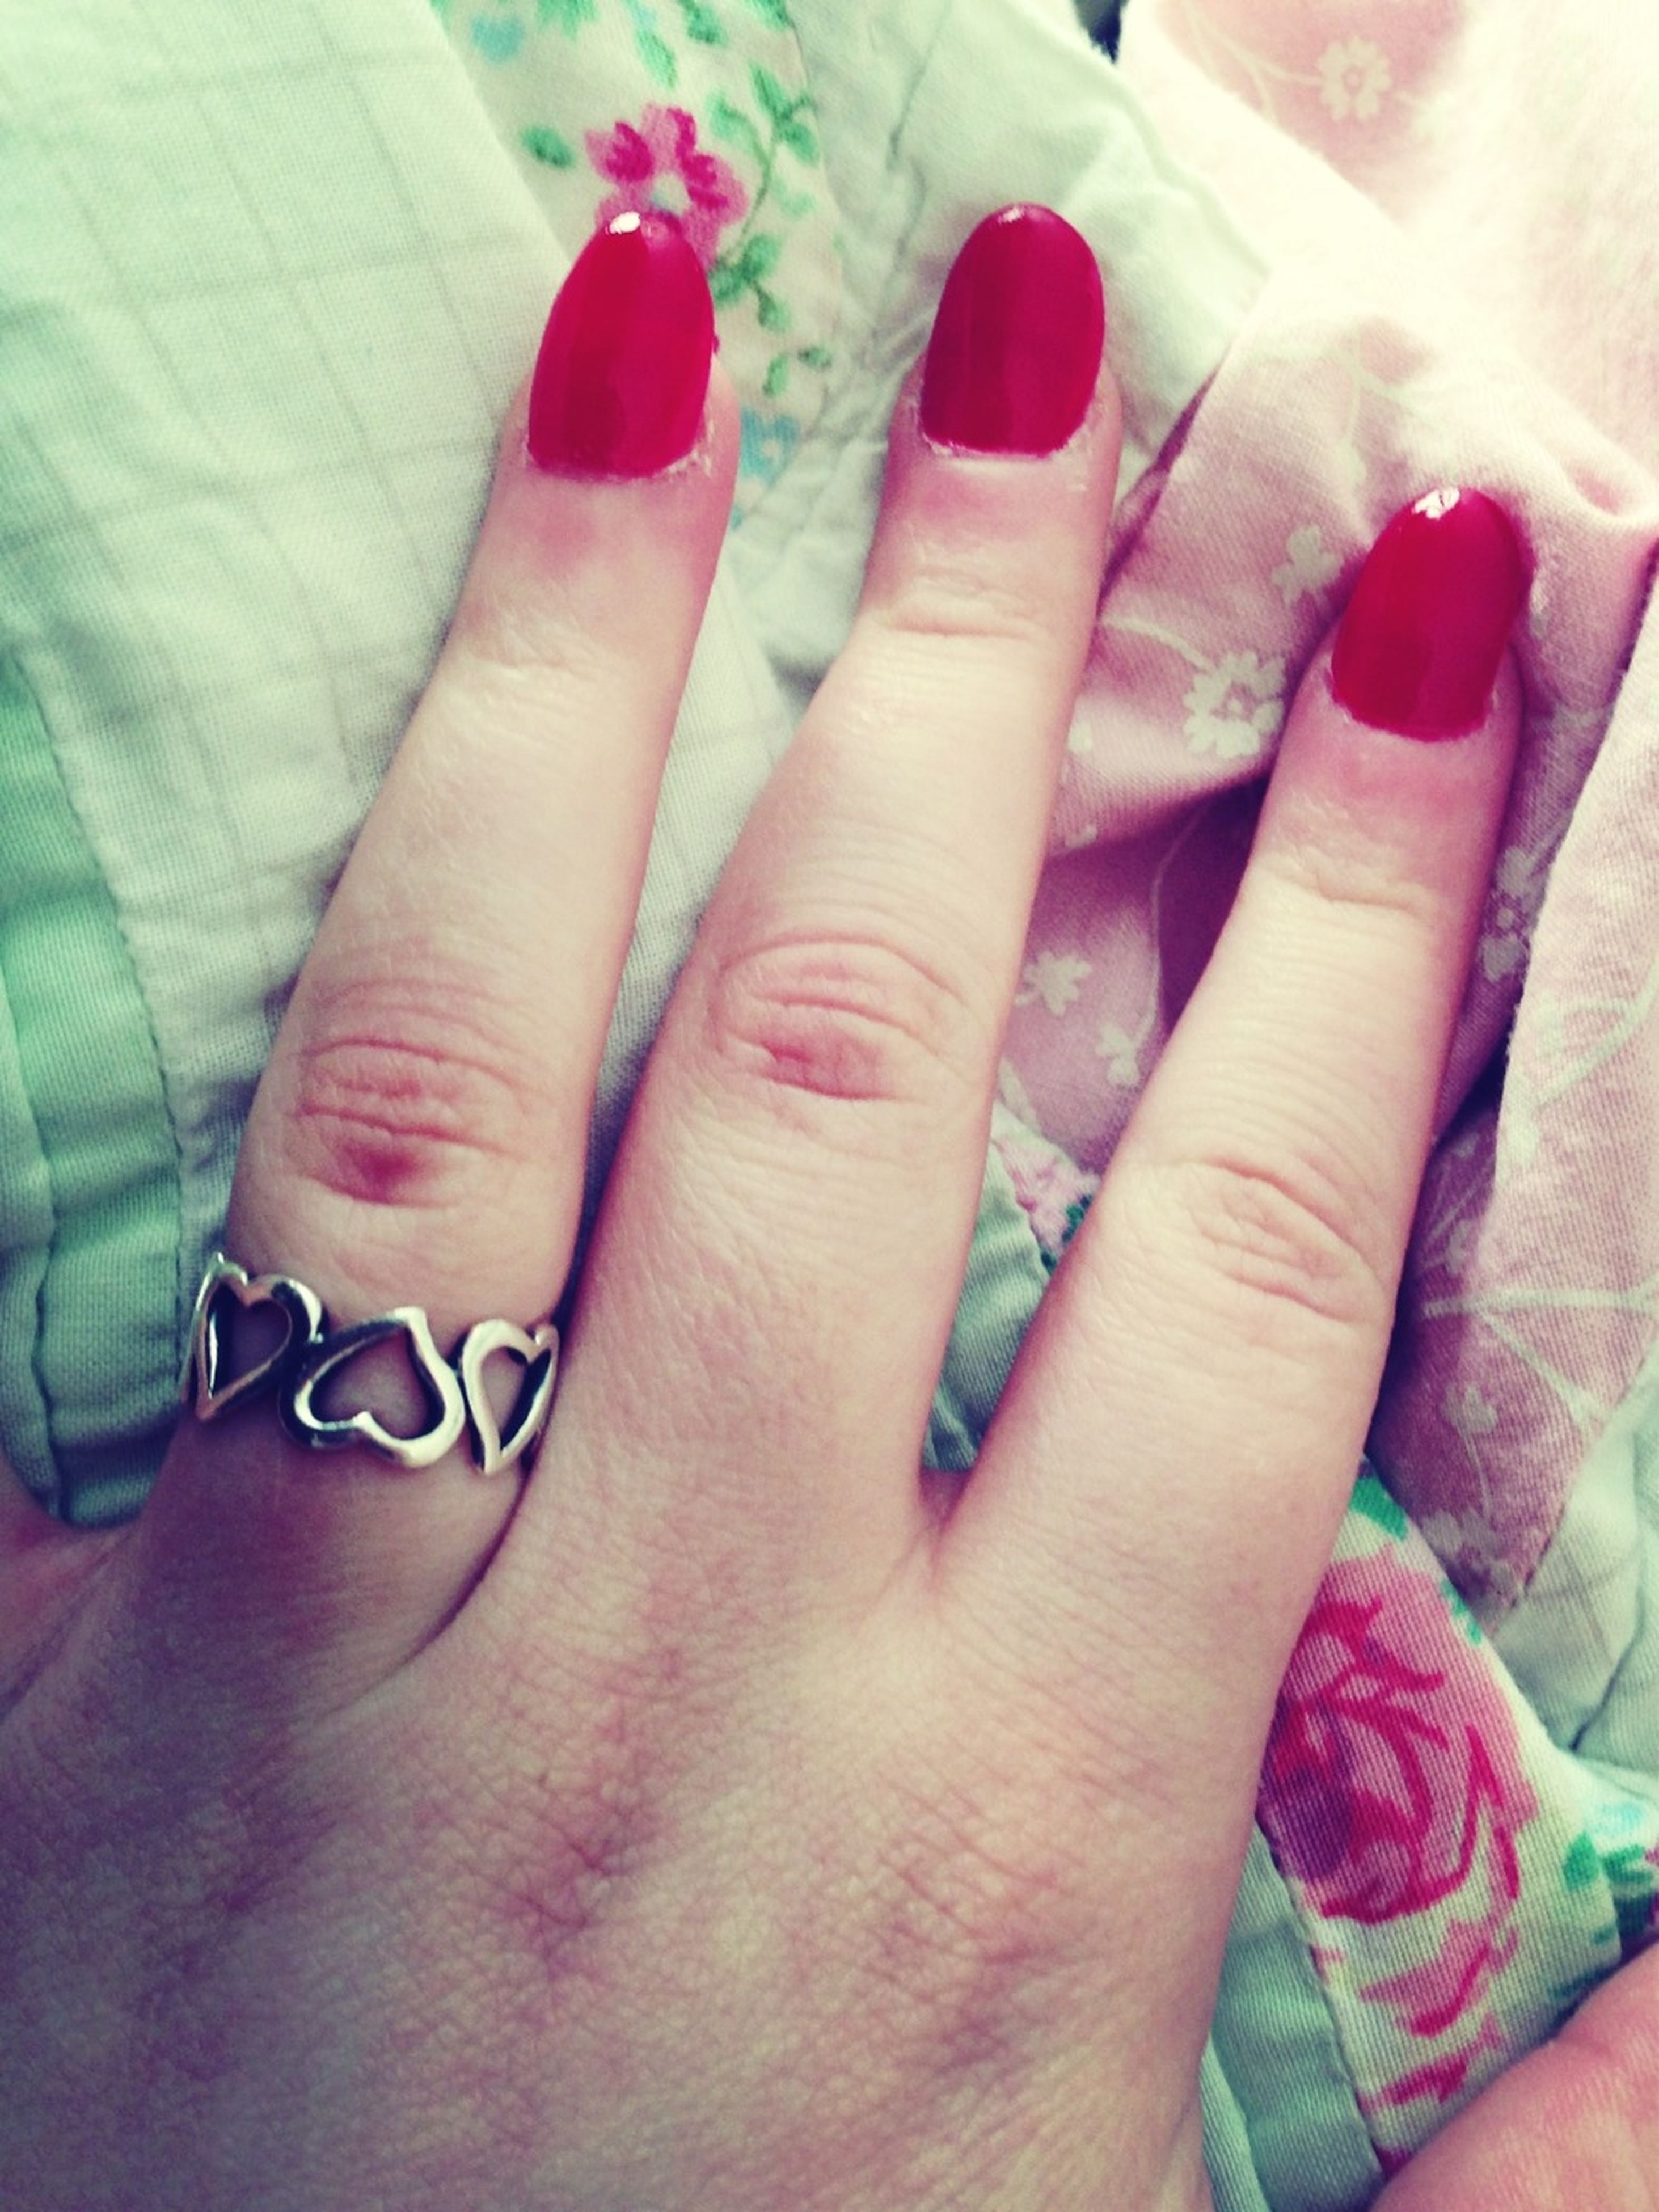 person, part of, indoors, human finger, cropped, holding, lifestyles, personal perspective, unrecognizable person, nail polish, high angle view, close-up, low section, leisure activity, human foot